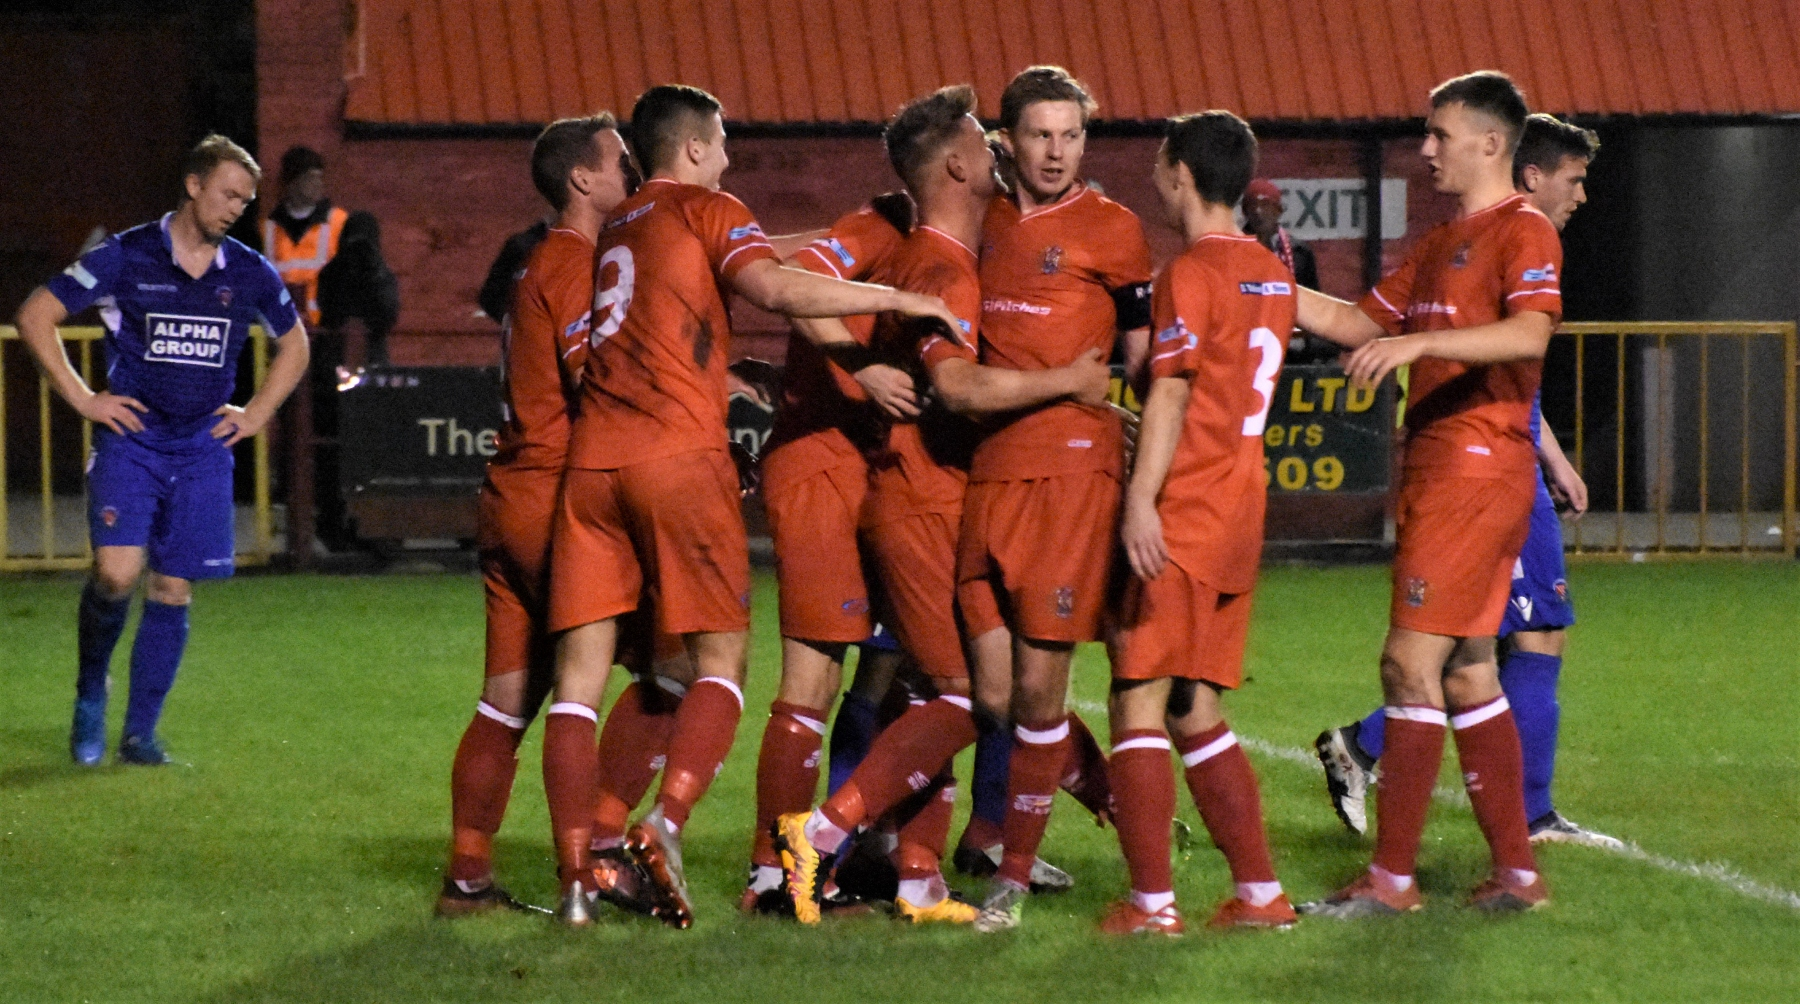 The Reds celebrate Dav Symington's first goal (Ben Challis)